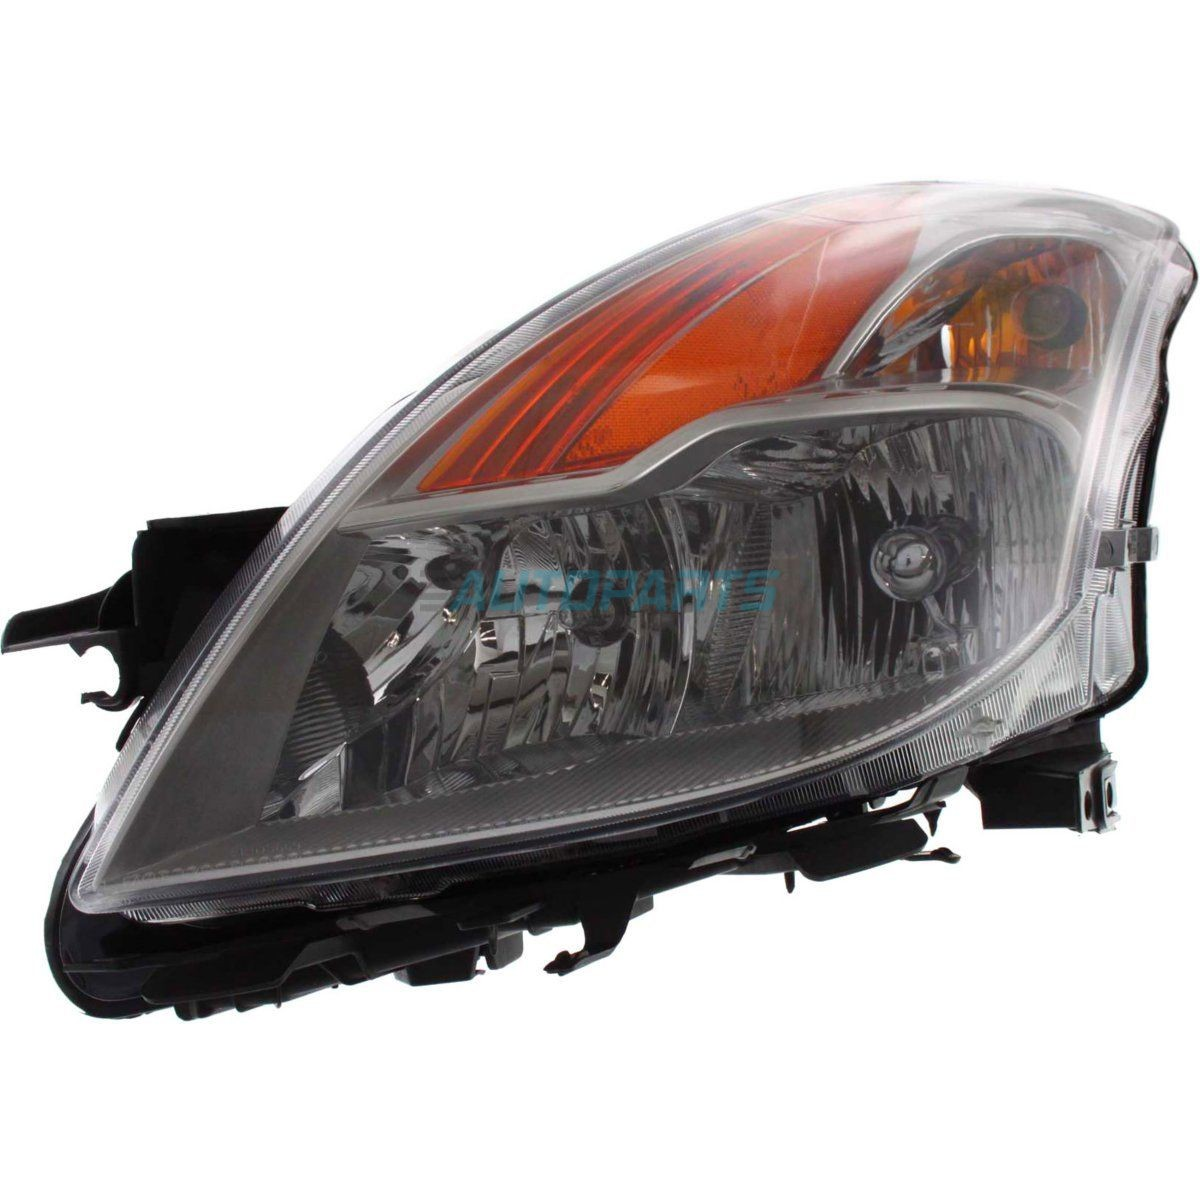 NEW LEFT HALOGEN HEAD LAMP ASSEMBLY FITS 2008-09 NISSAN ALTIMA COUPE NI2502176